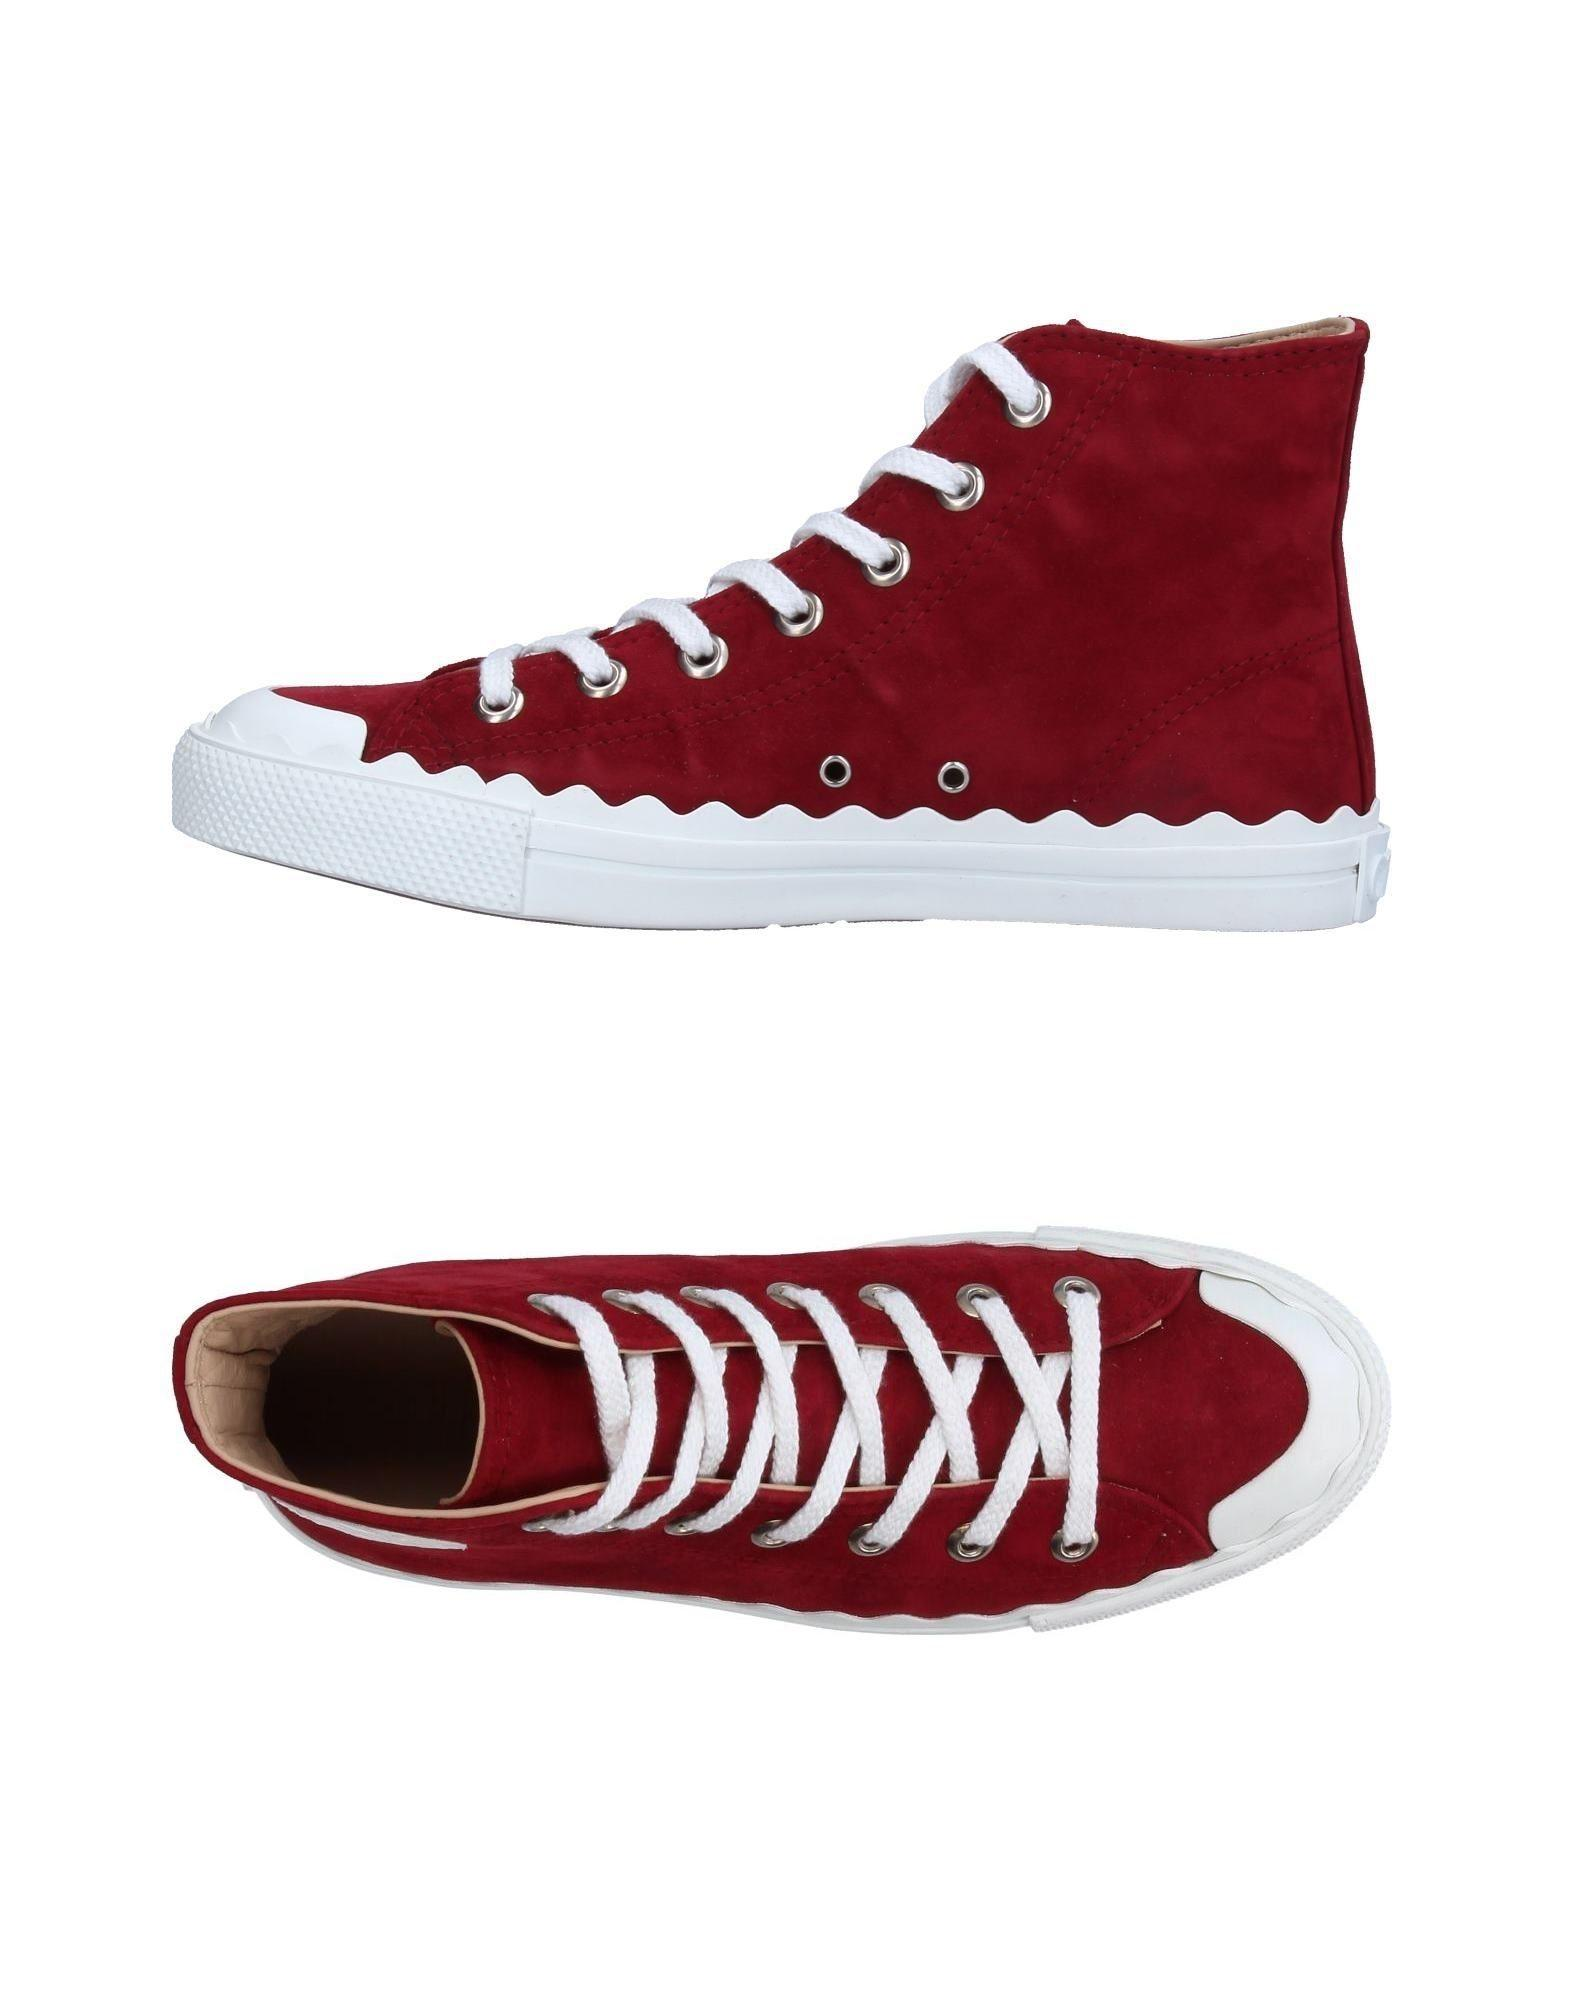 chlo high tops sneakers in red lyst. Black Bedroom Furniture Sets. Home Design Ideas